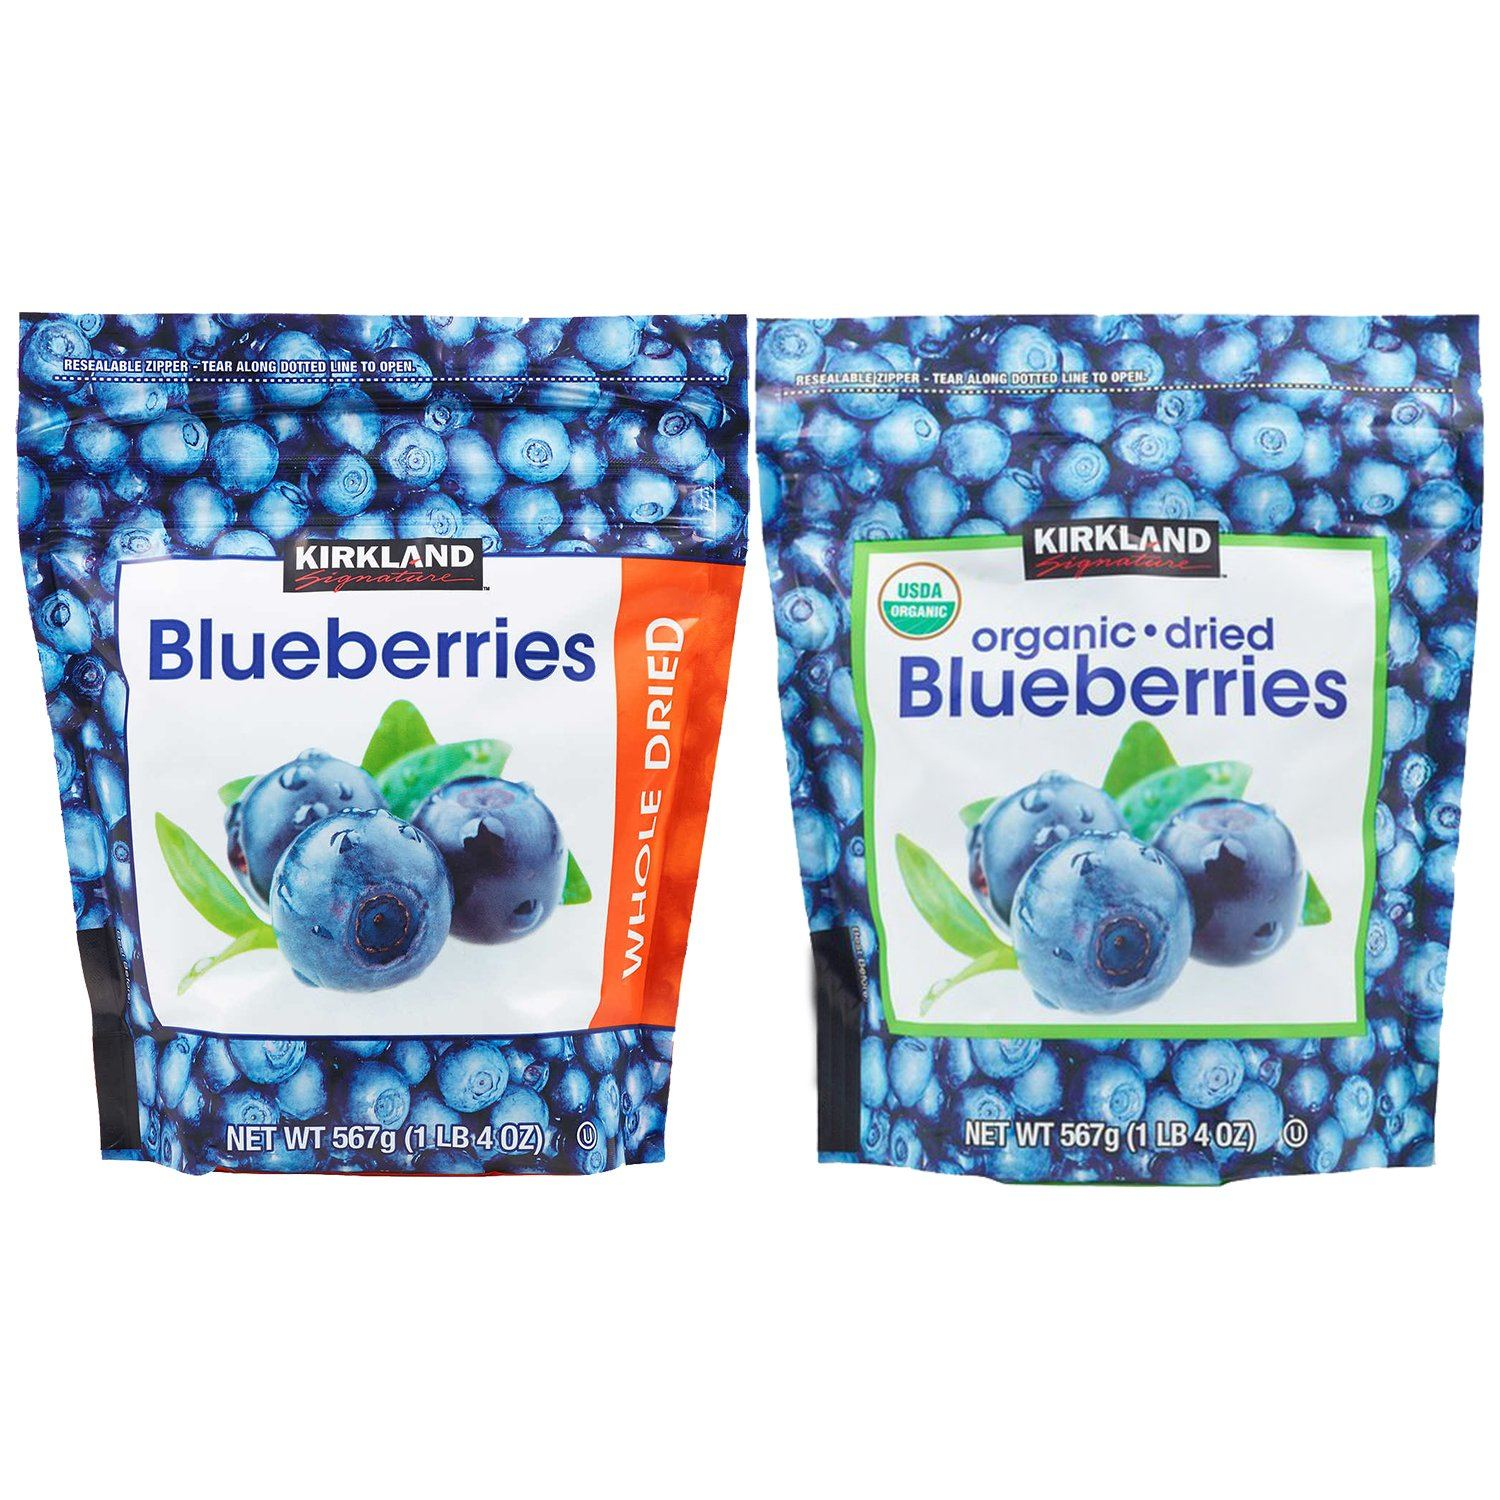 Kirkland Signature Whole Dried Blueberries Kirkland Signature